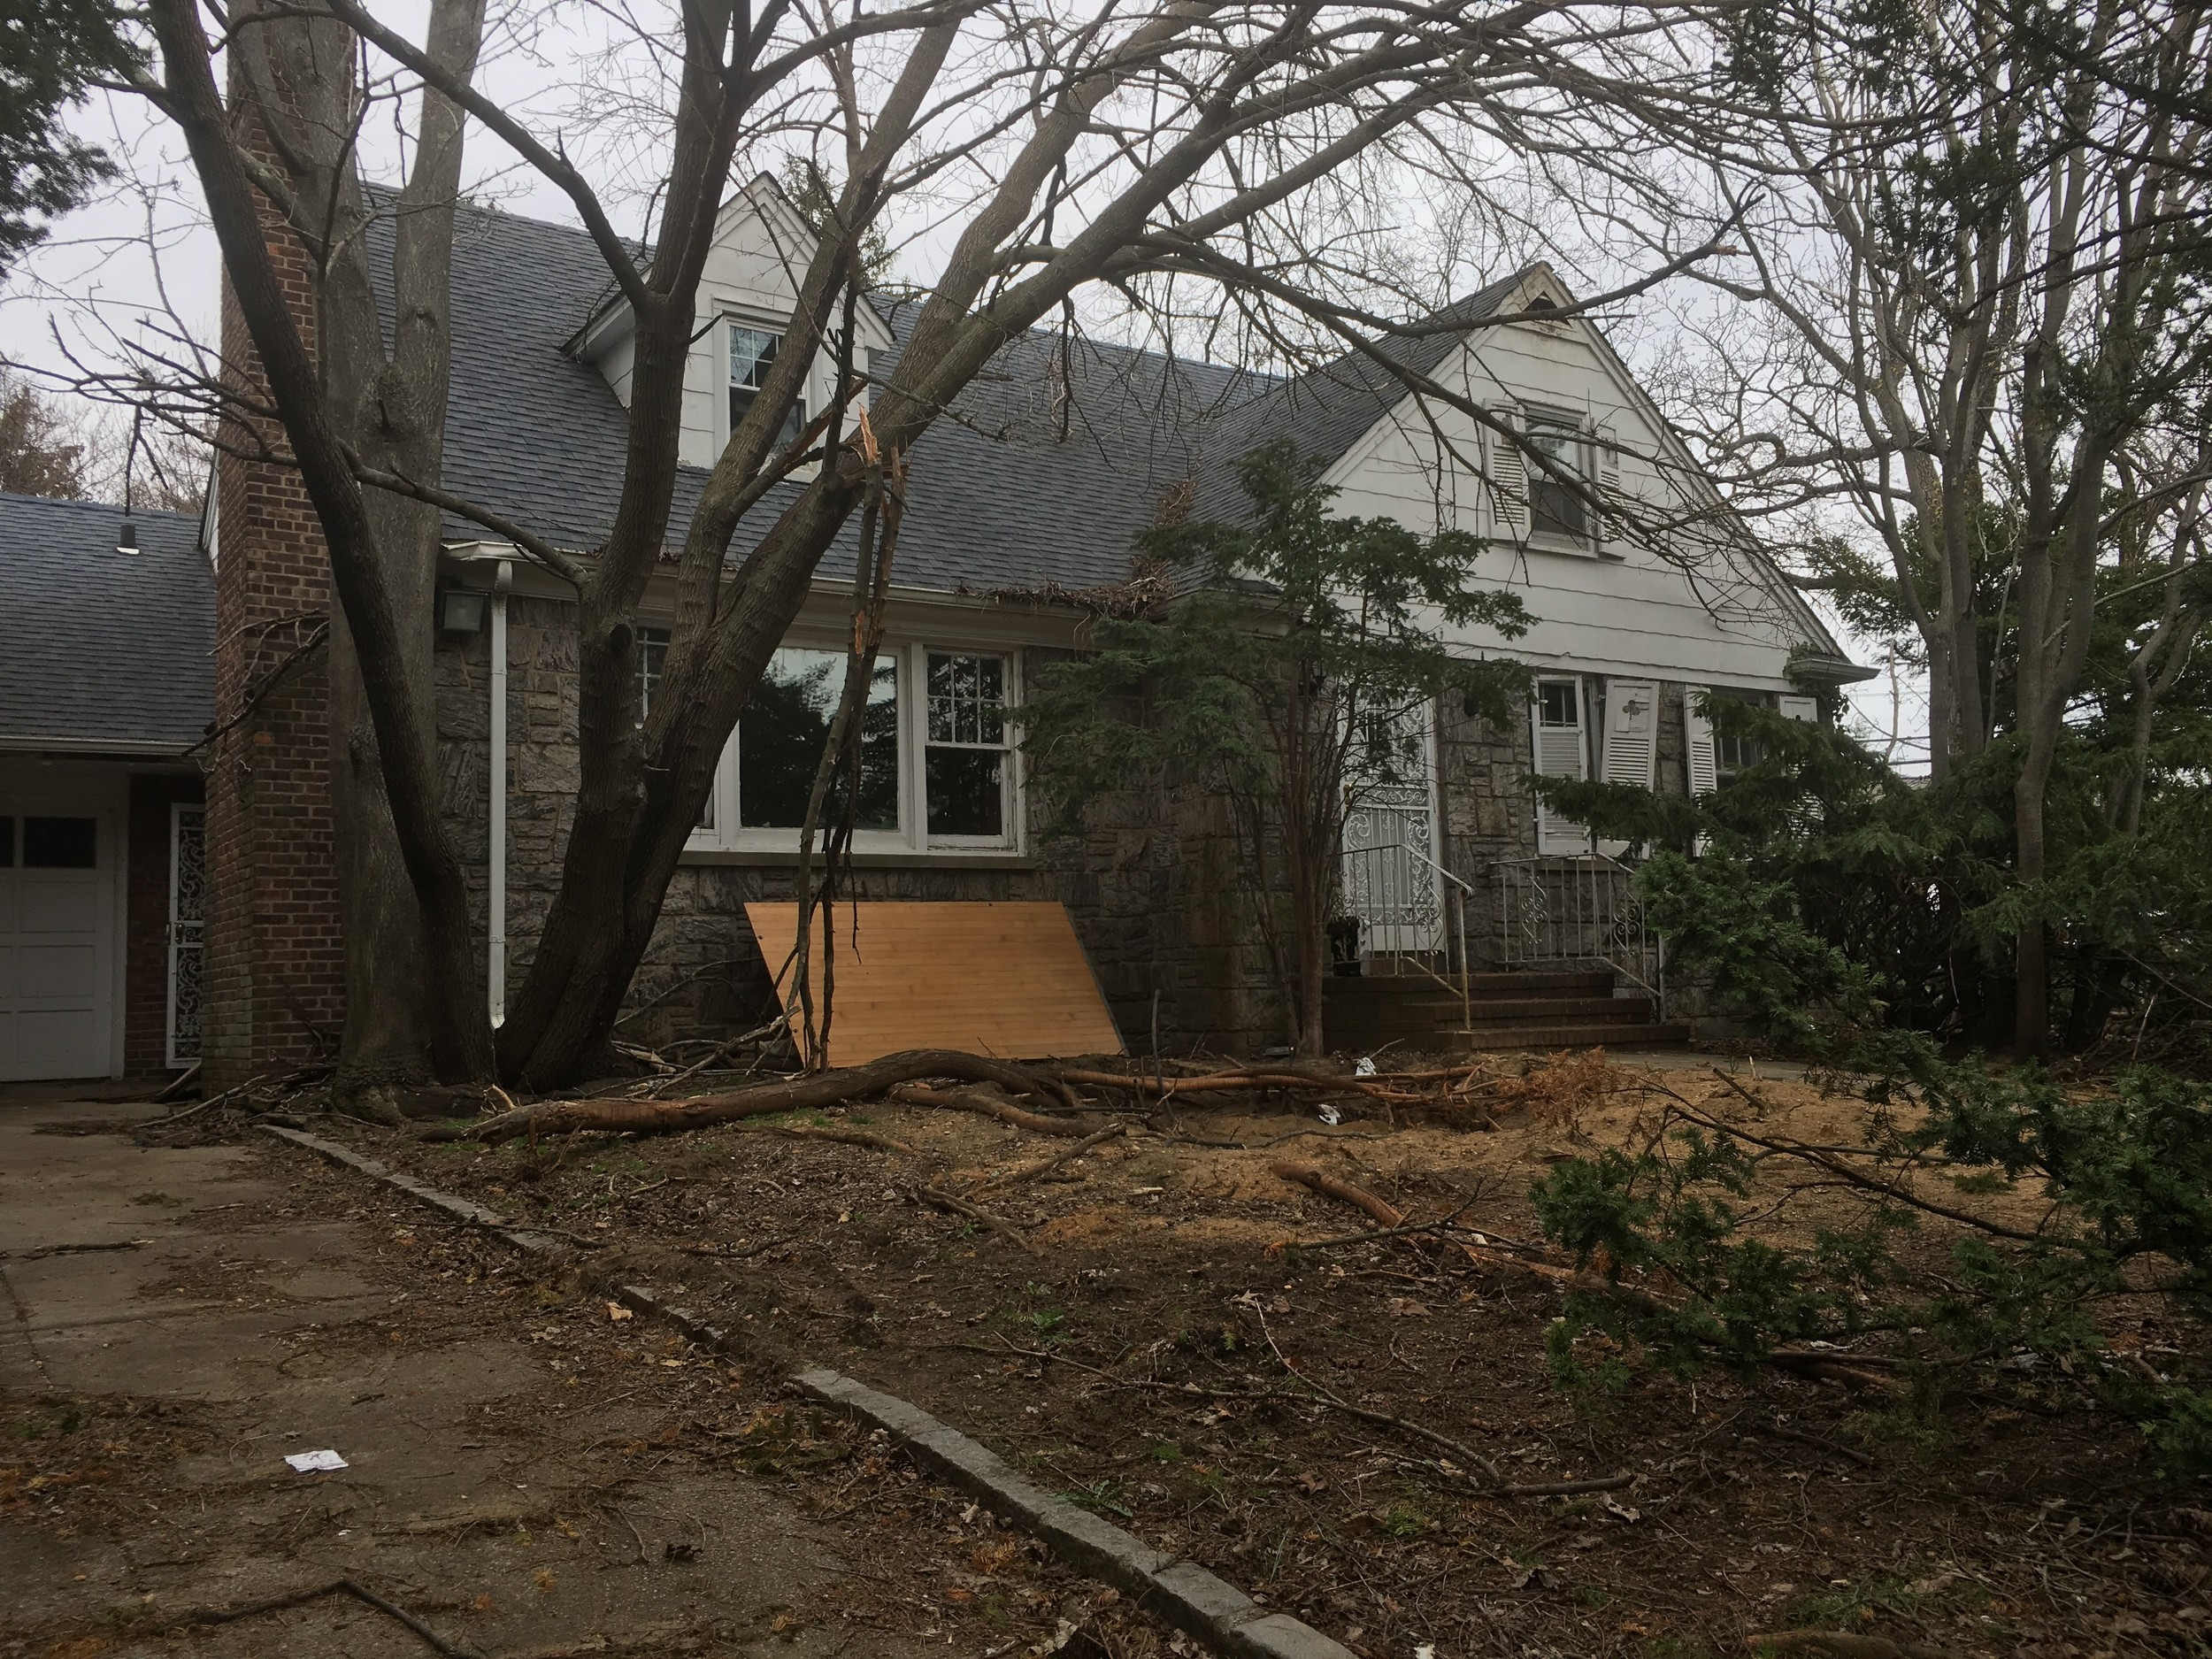 Plywood leans against the house's walls and windows are smashed at 1 Wallace Court.